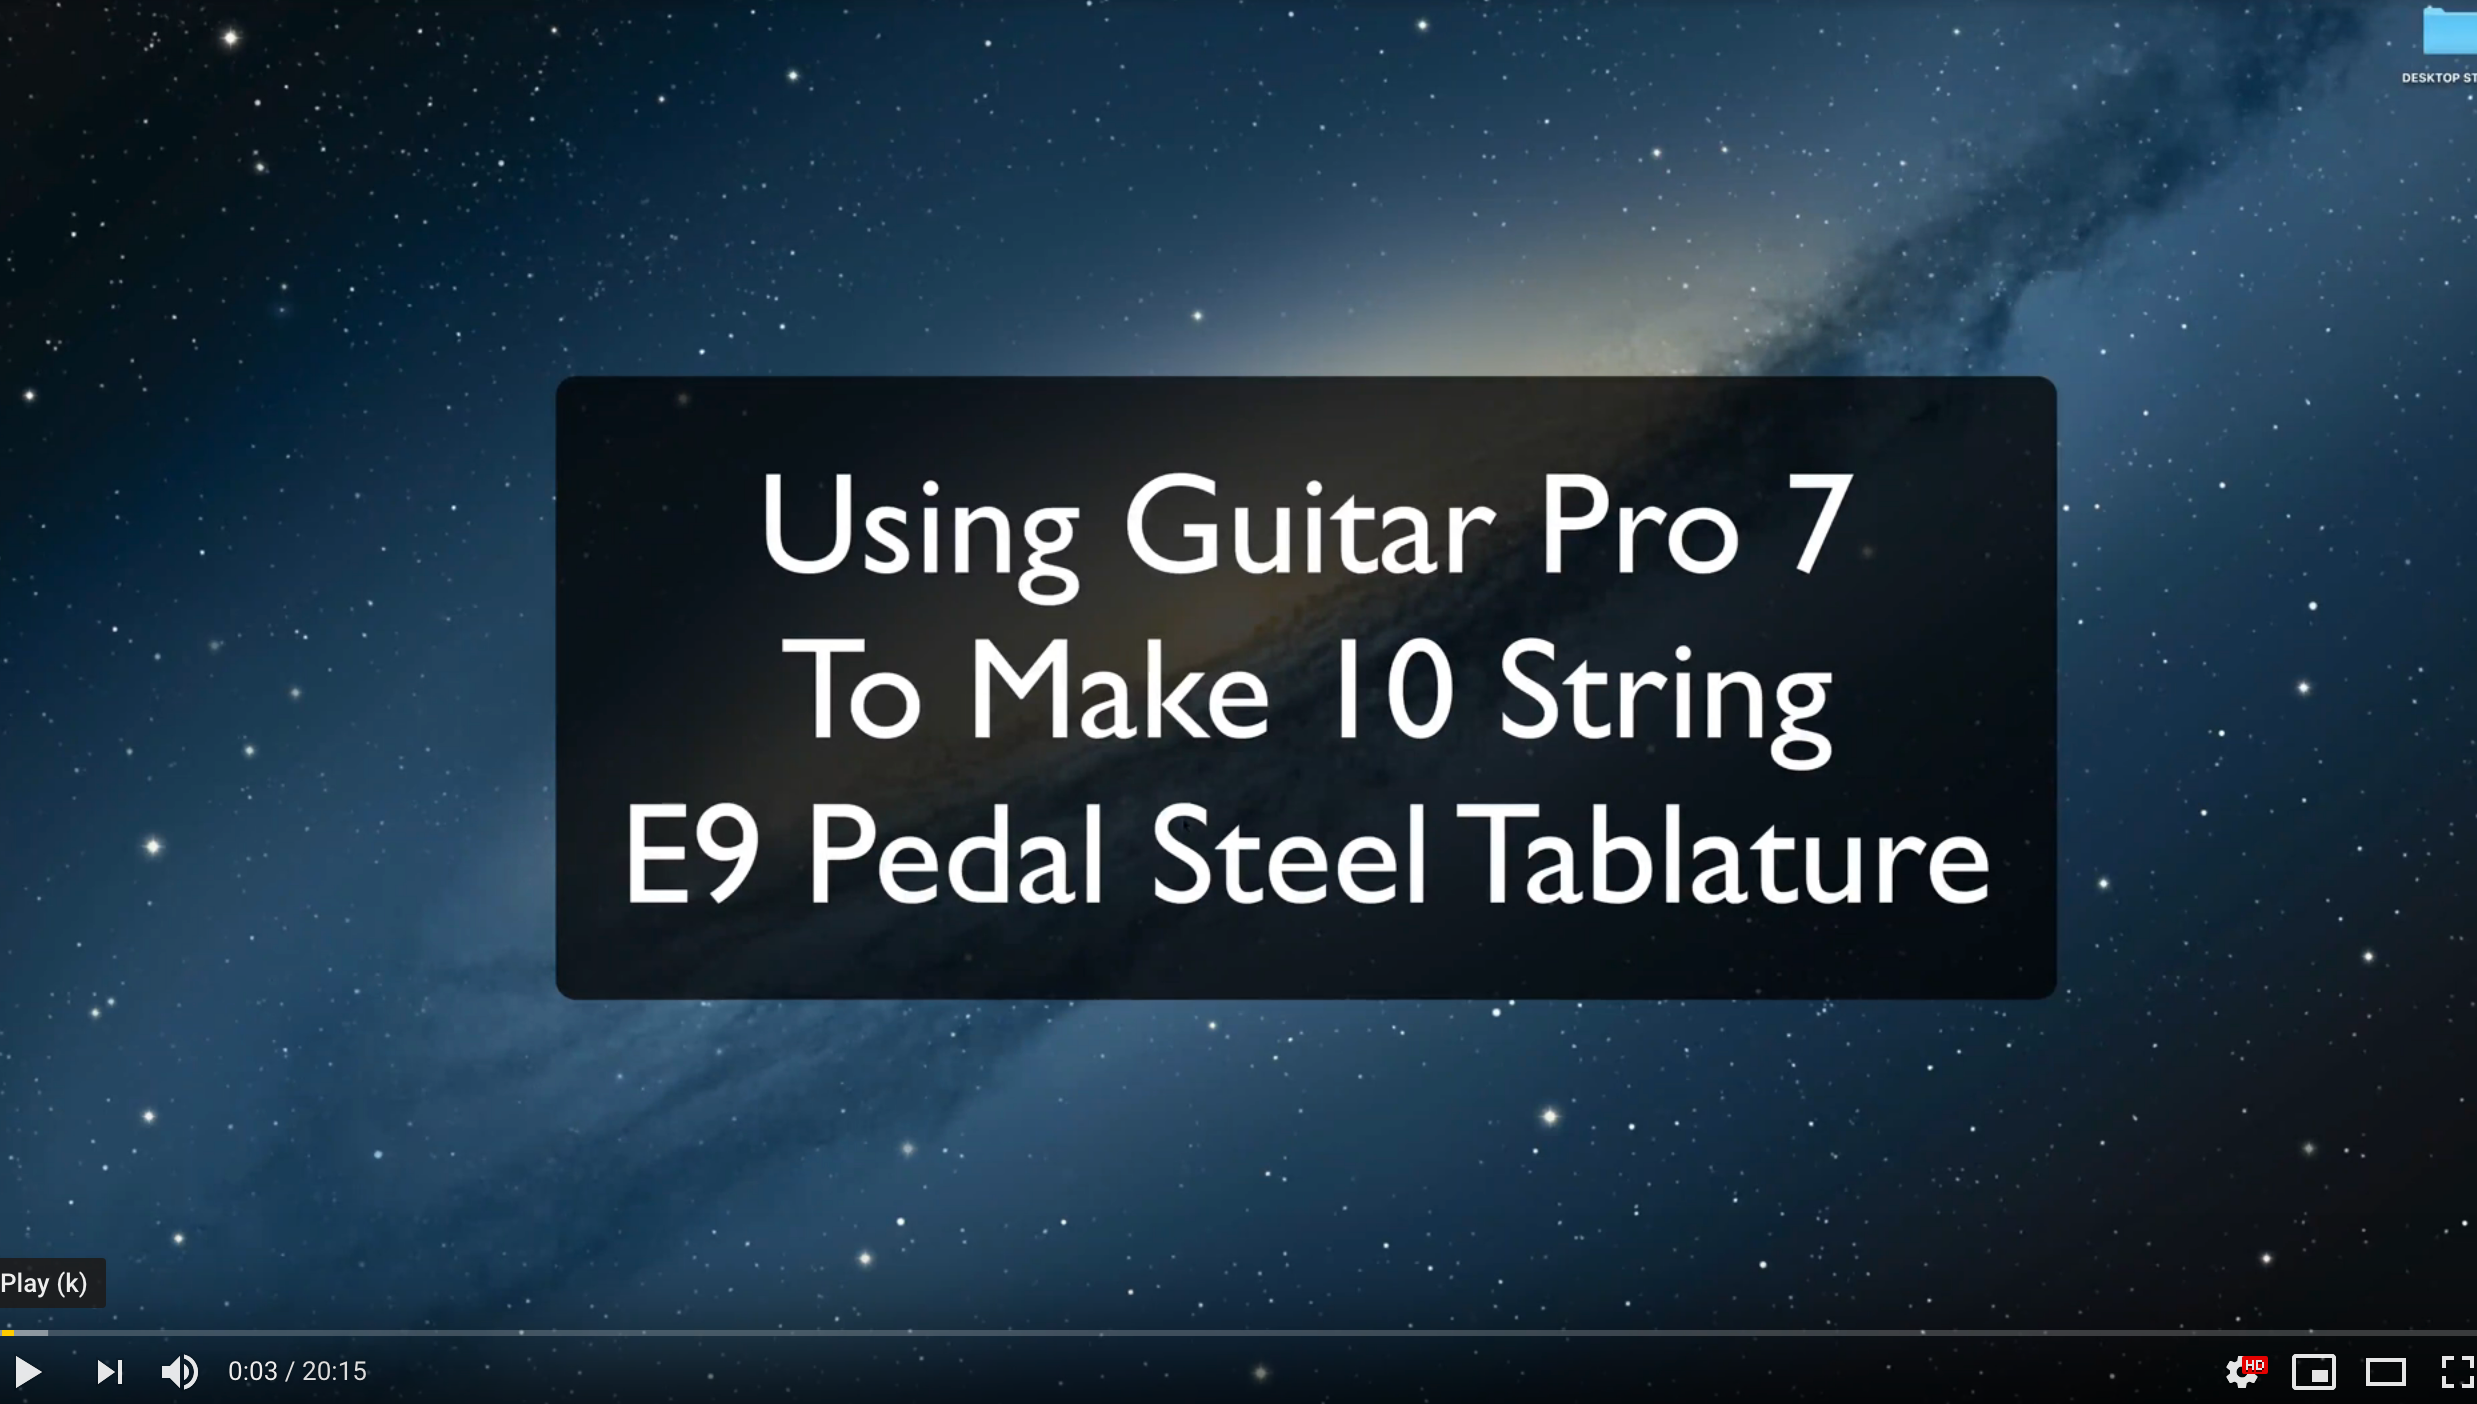 Using Guitar Pro 7 to Make E9 Pedal Steel Tablature